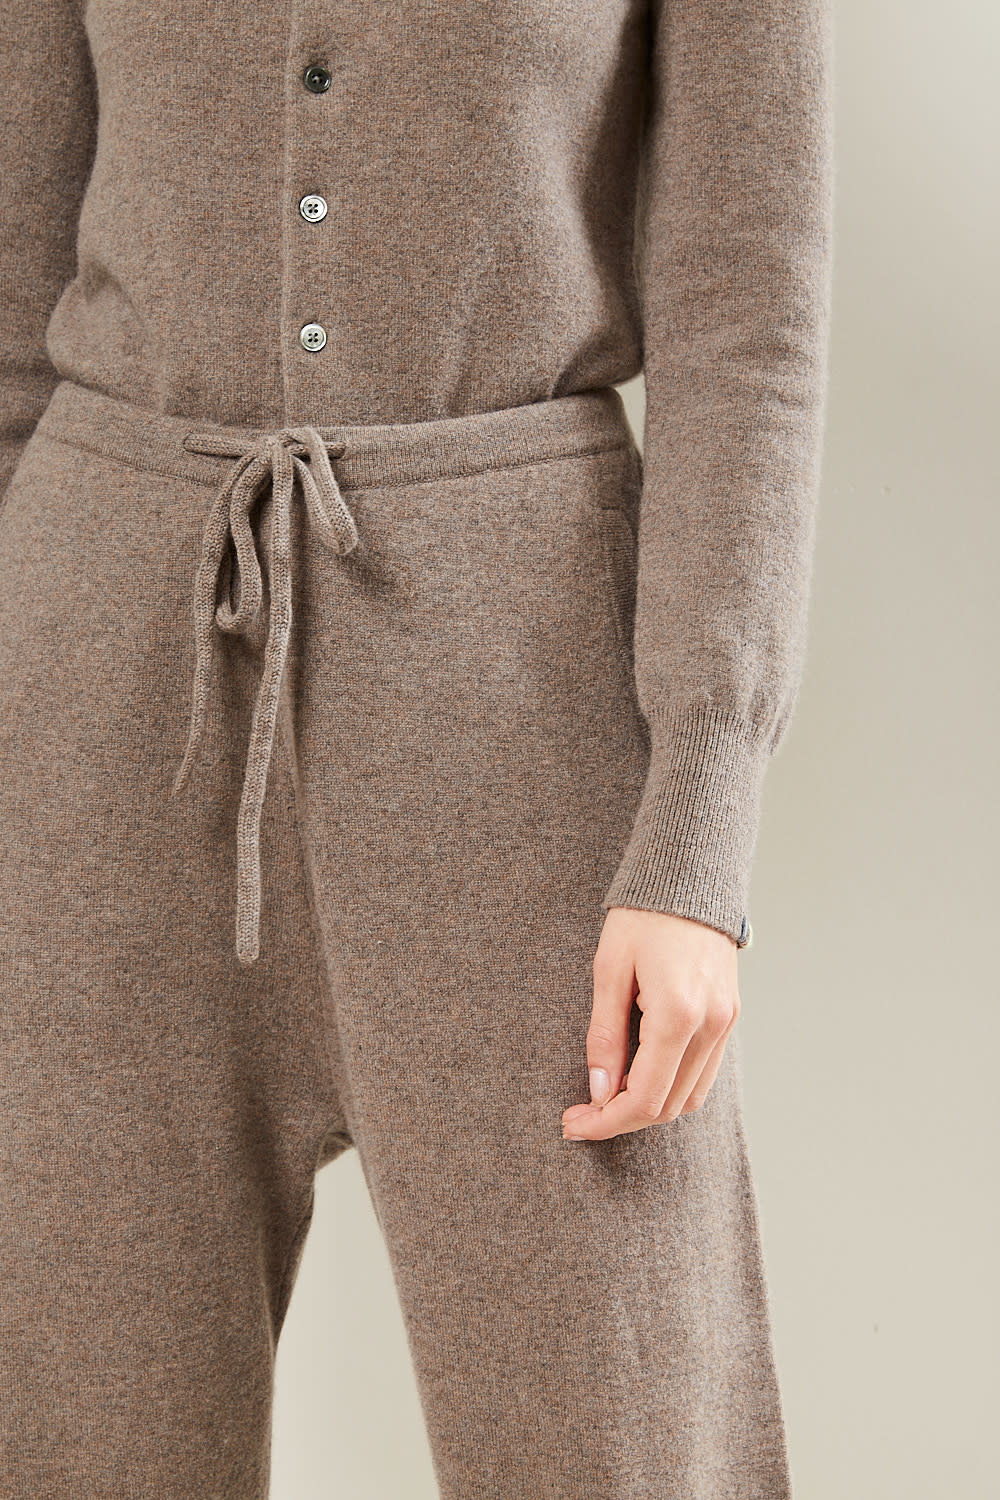 extreme cashmere - Run cashmere pant